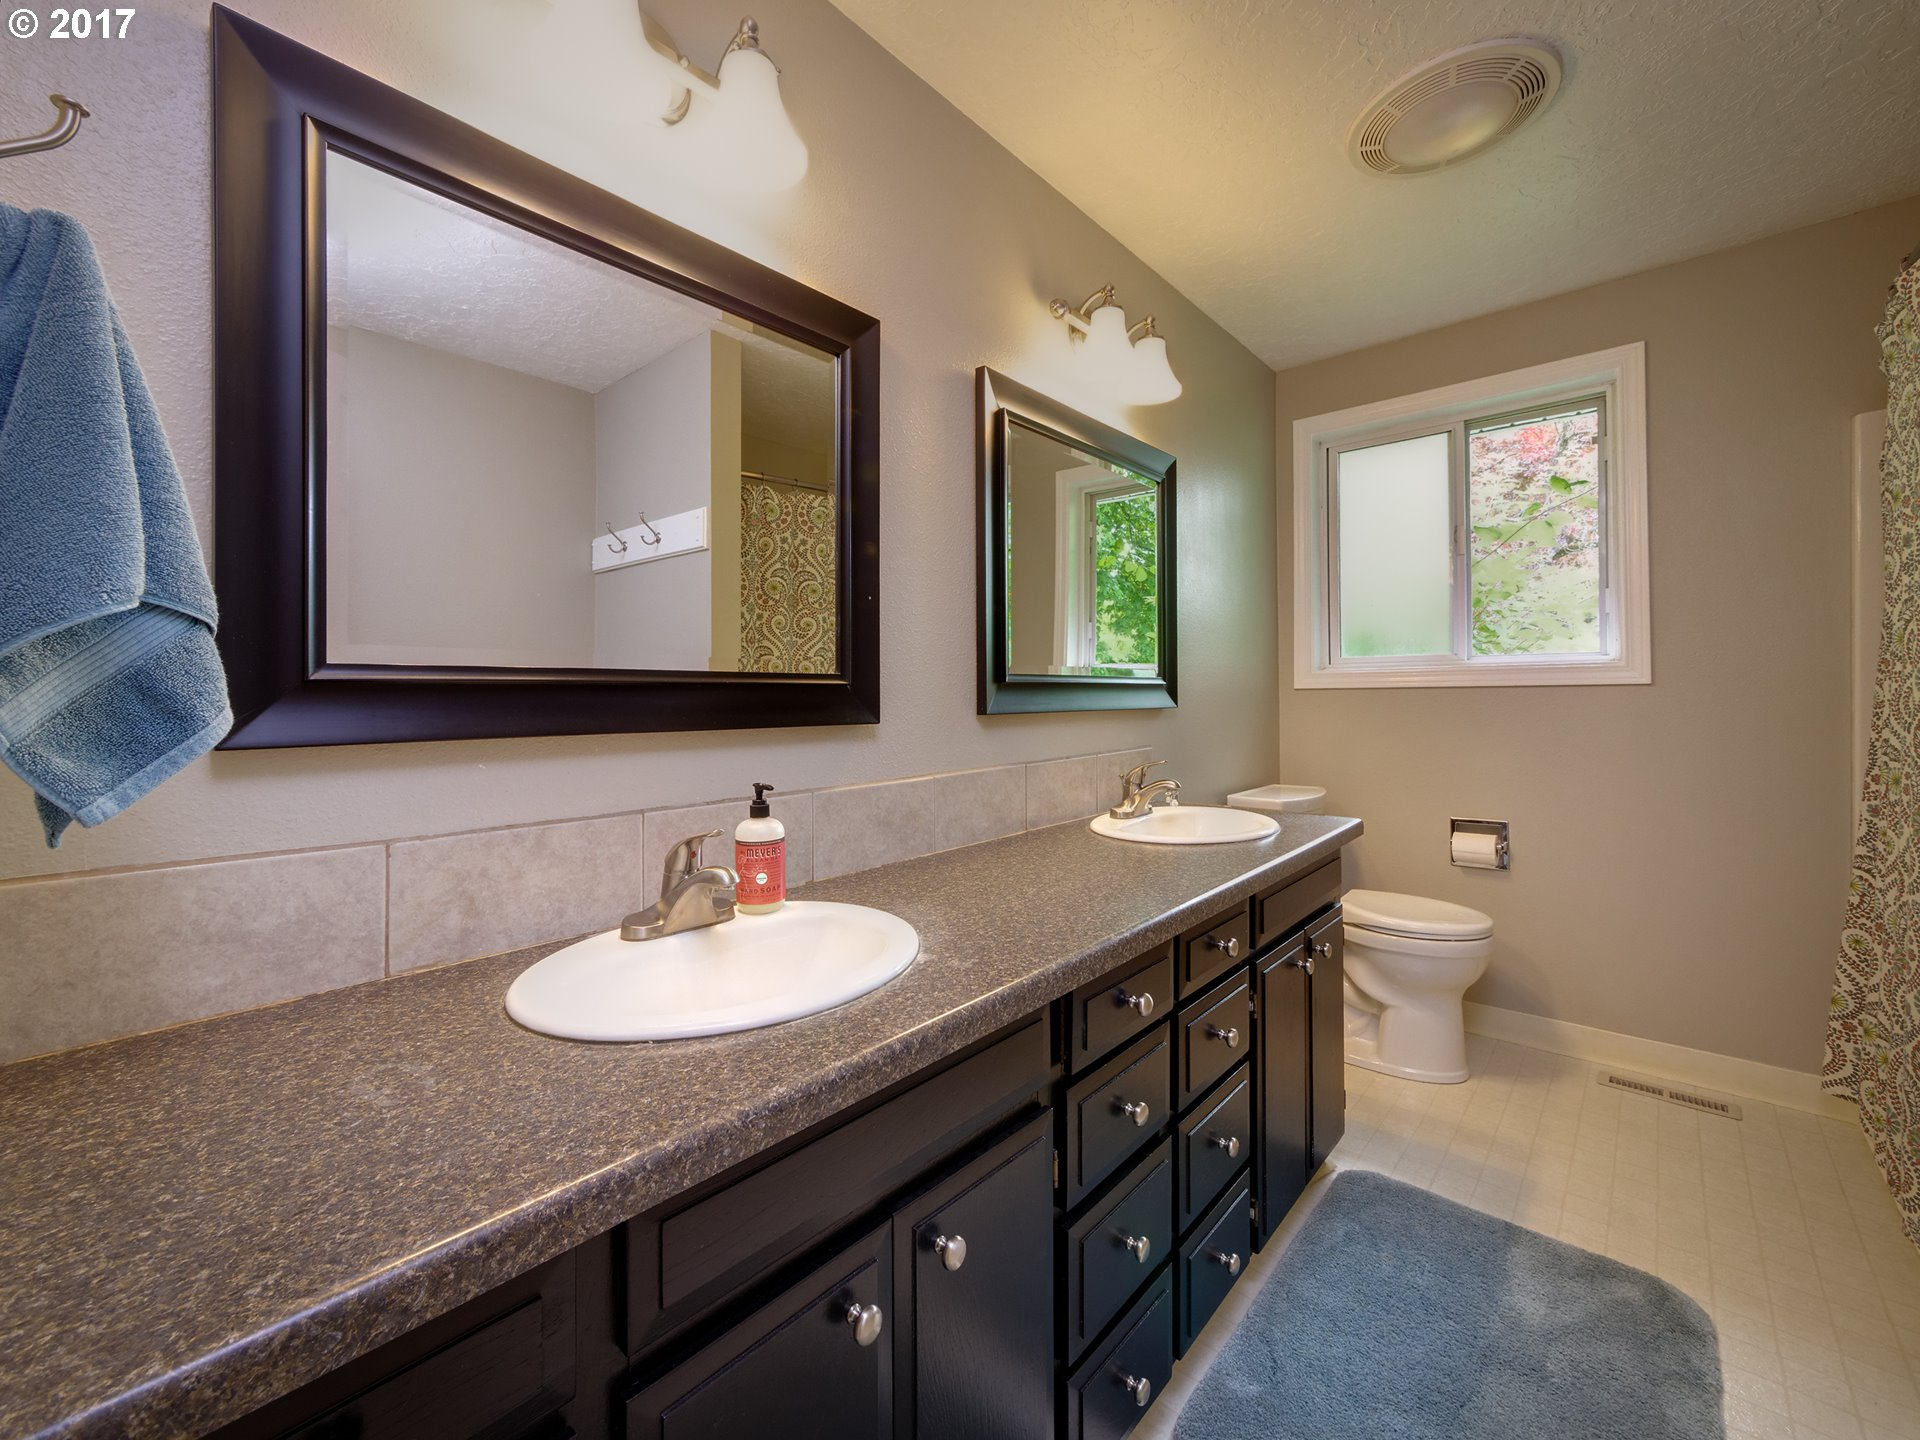 11700 S MAKIN LN Canby, OR 97013 - MLS #: 17517140